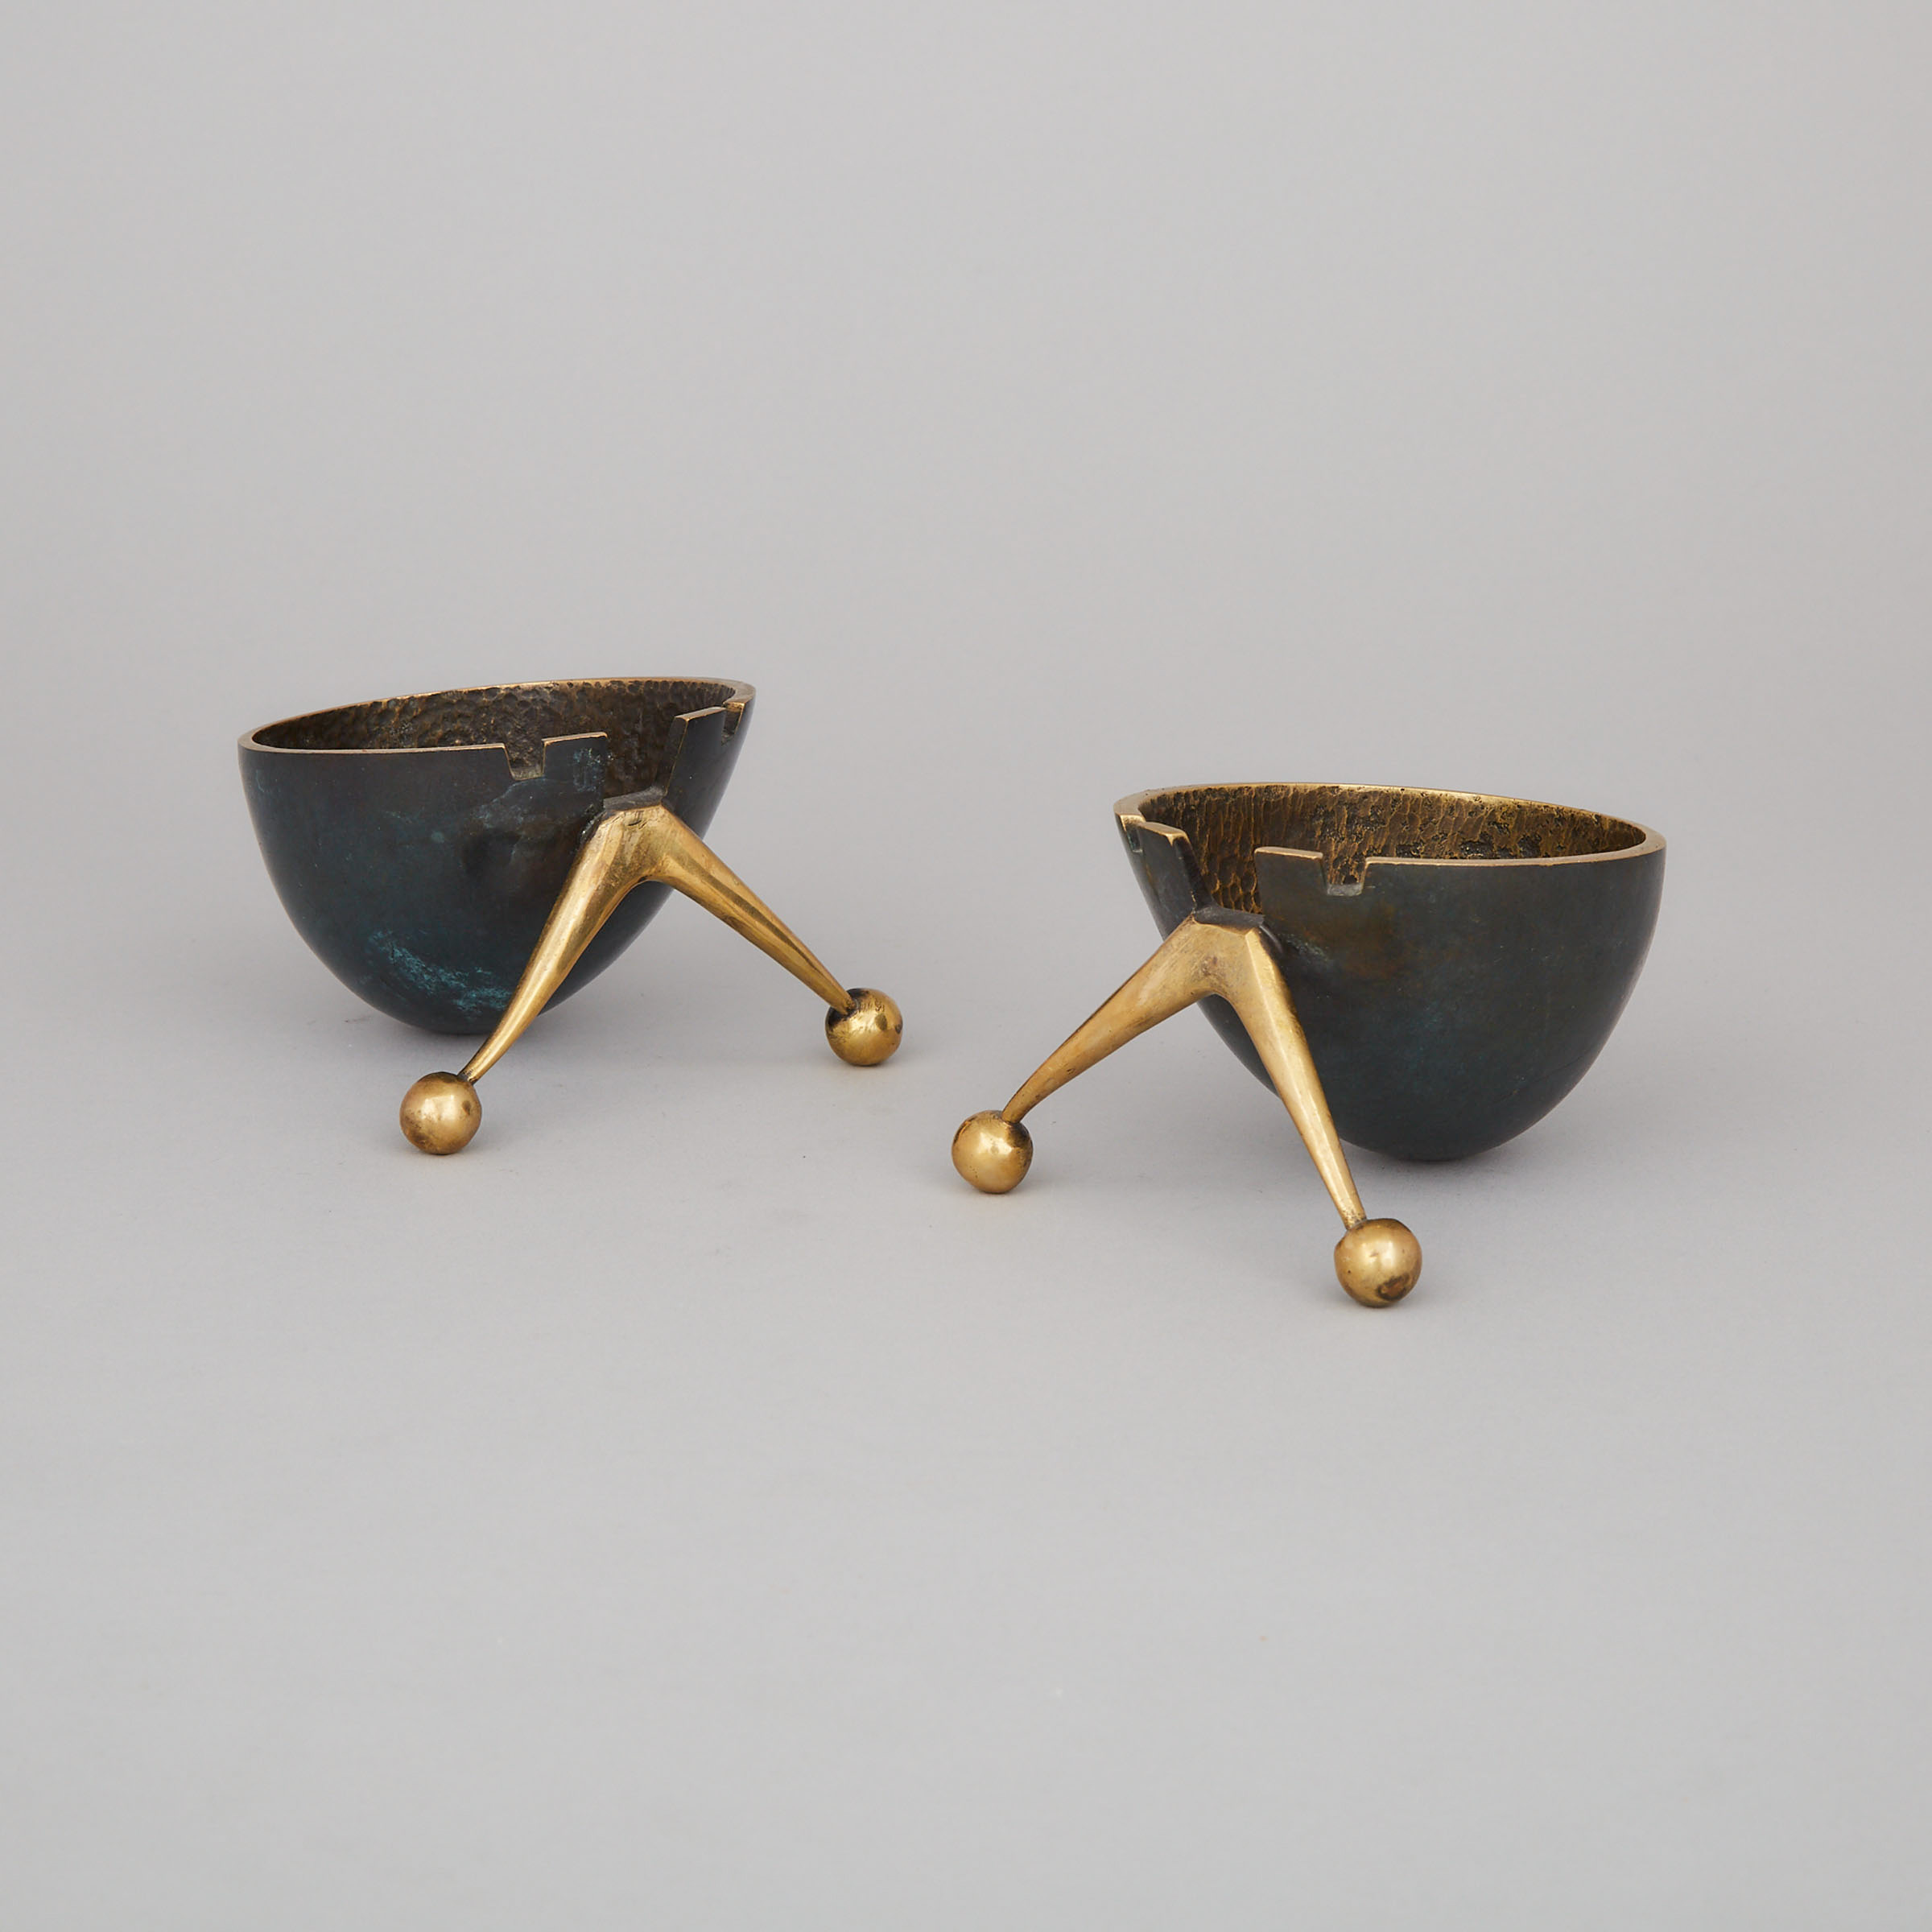 Two Maurice Ascalon for Pal Bell Brass 'Atomic Snail' Ashtrays, c.1950